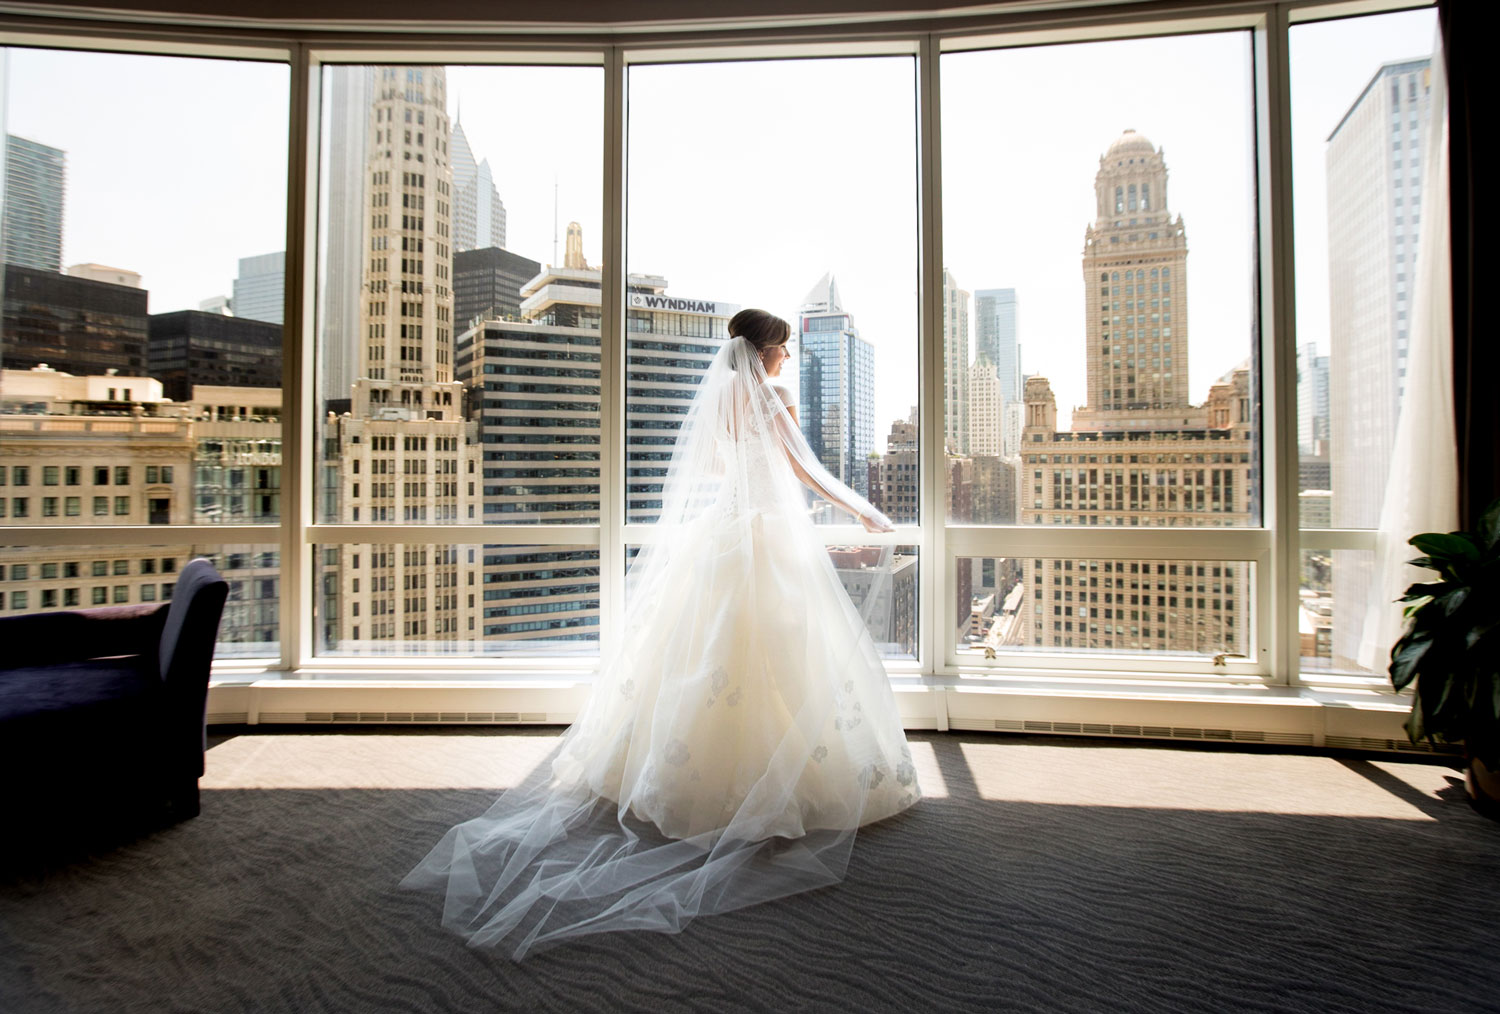 Should You Shop for Your Wedding Dress Alone? - Inside Weddings